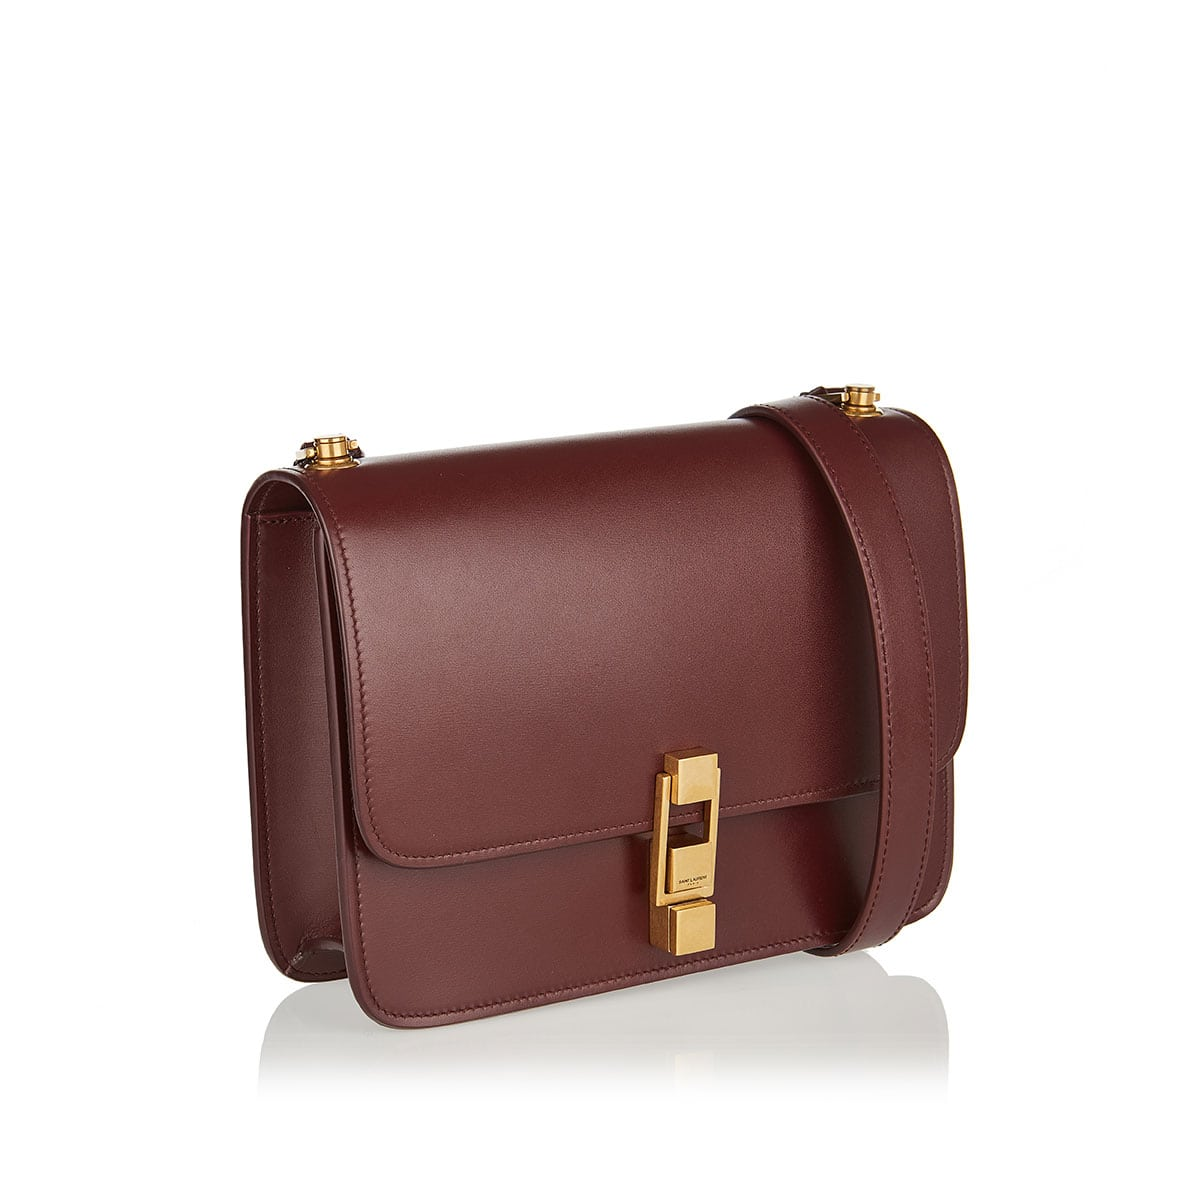 Carre leather satchel bag